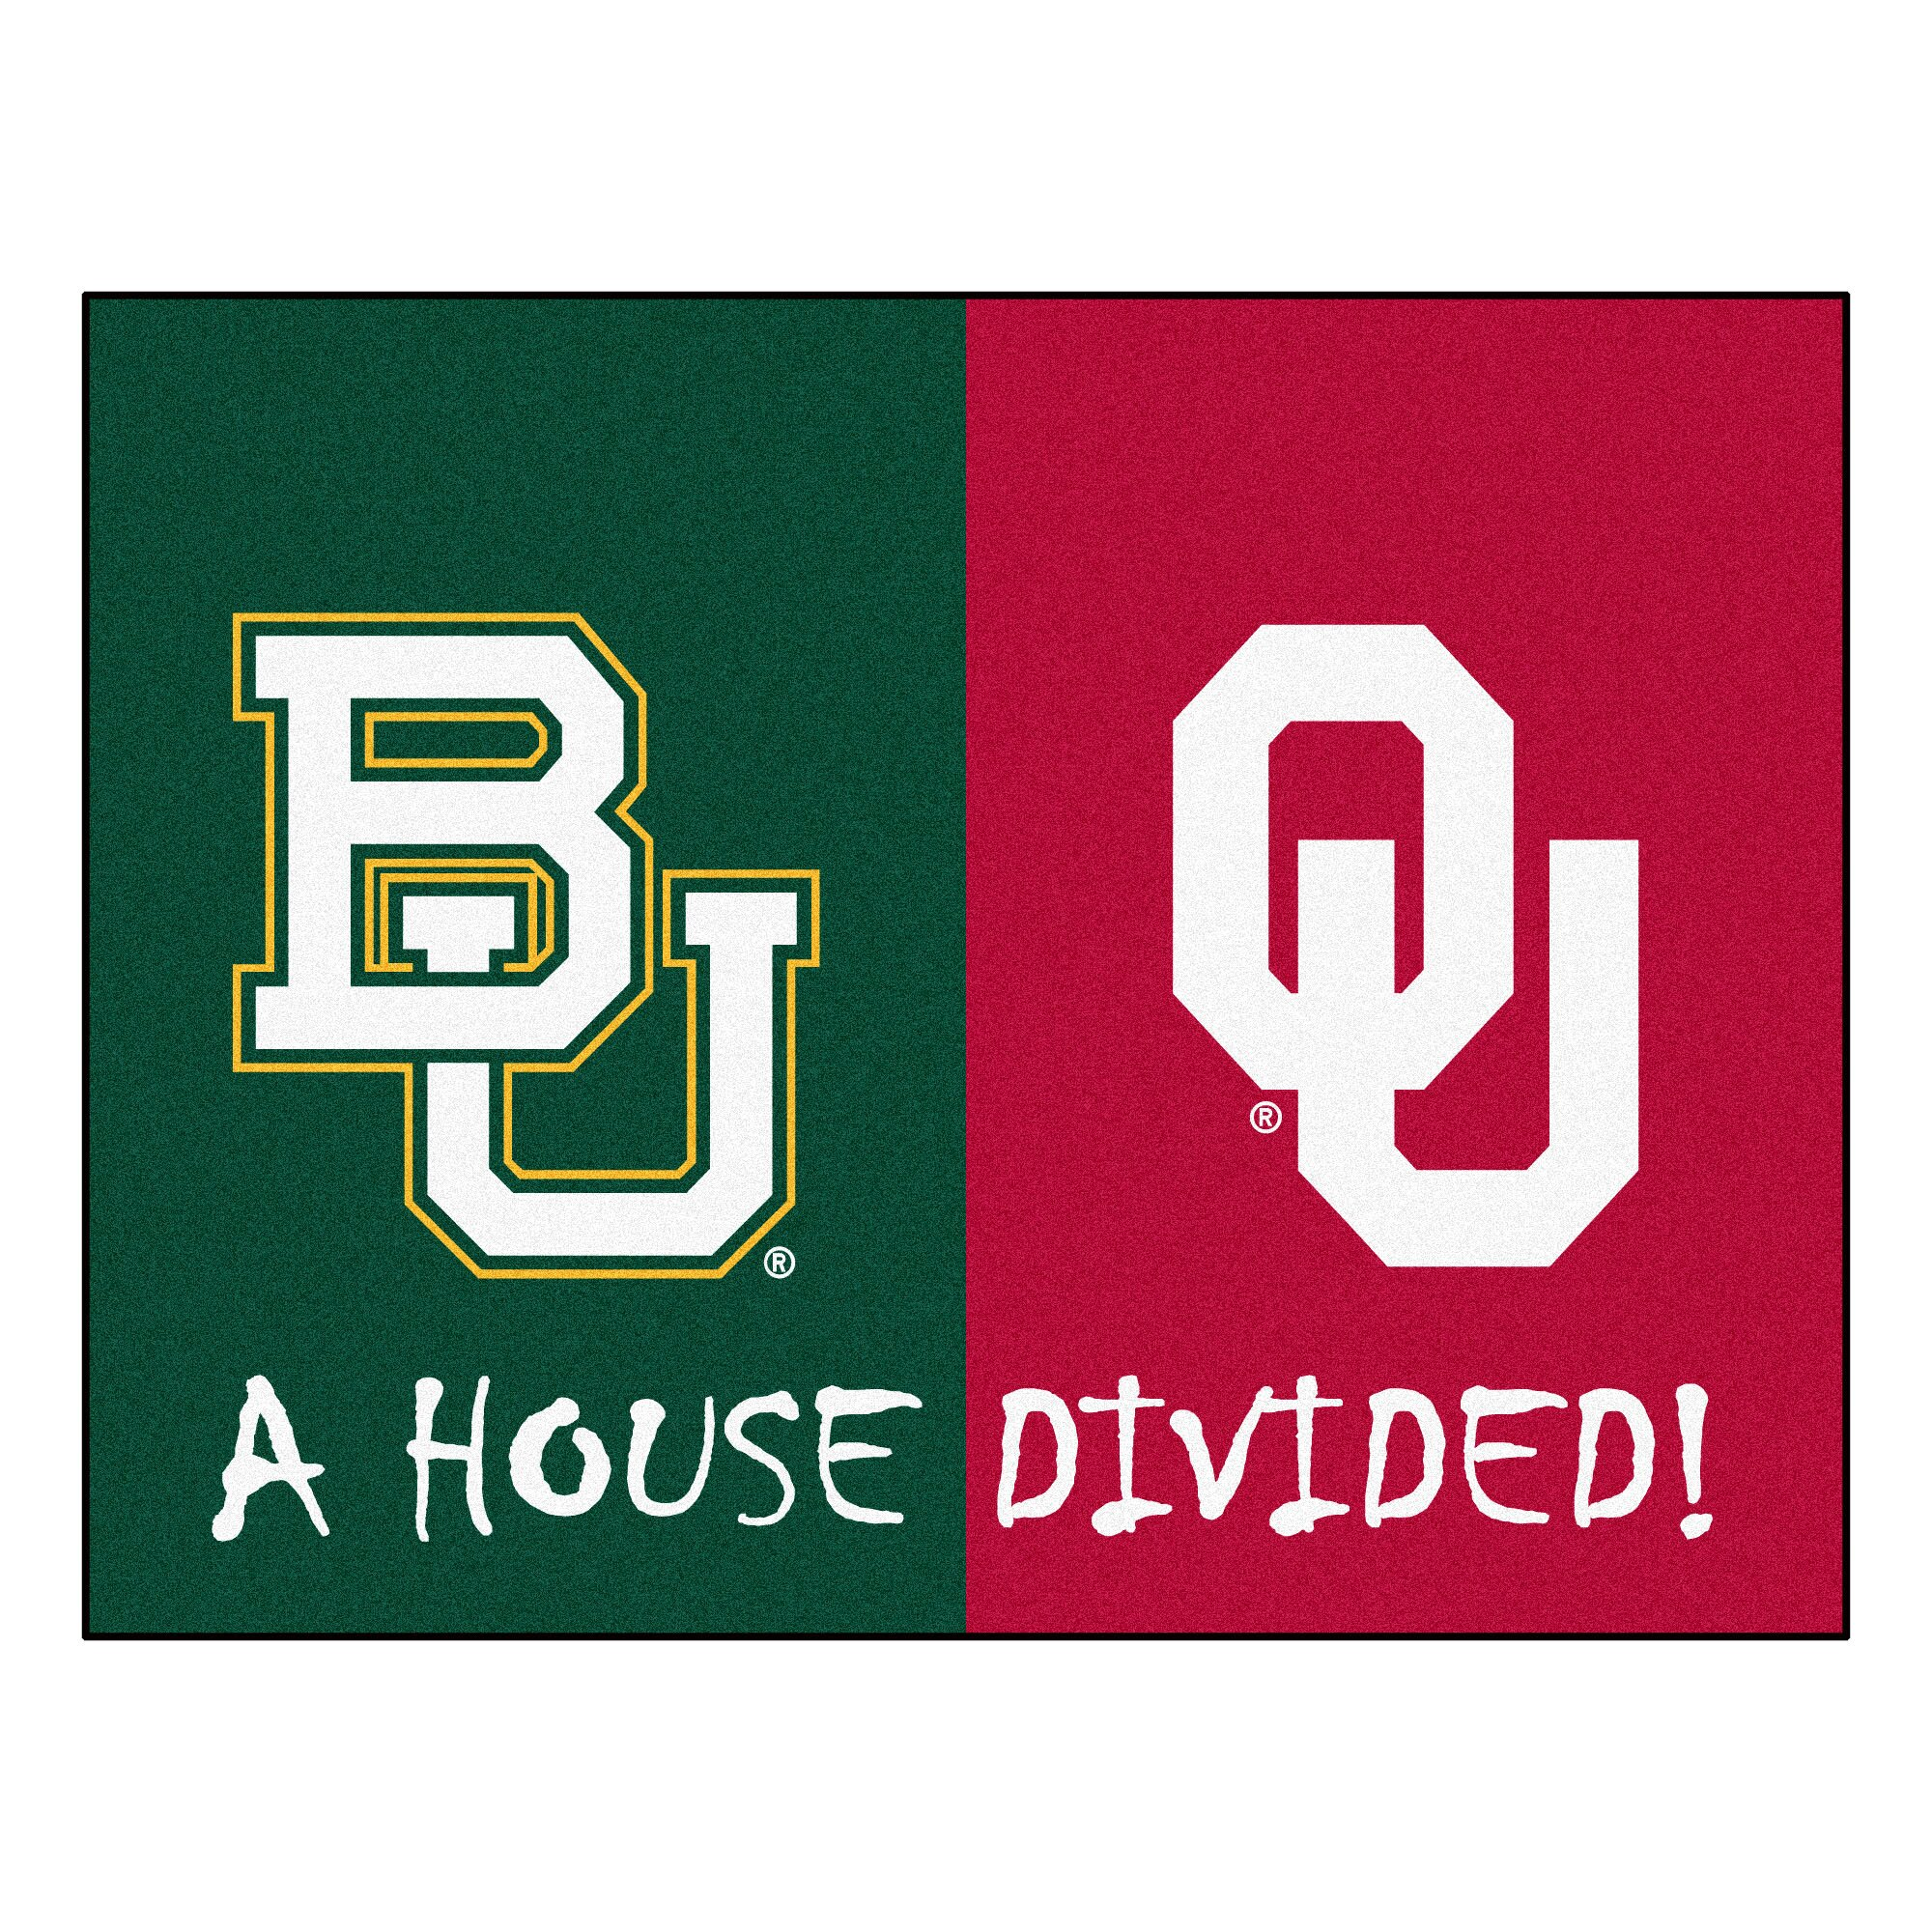 A House Divided Bedding